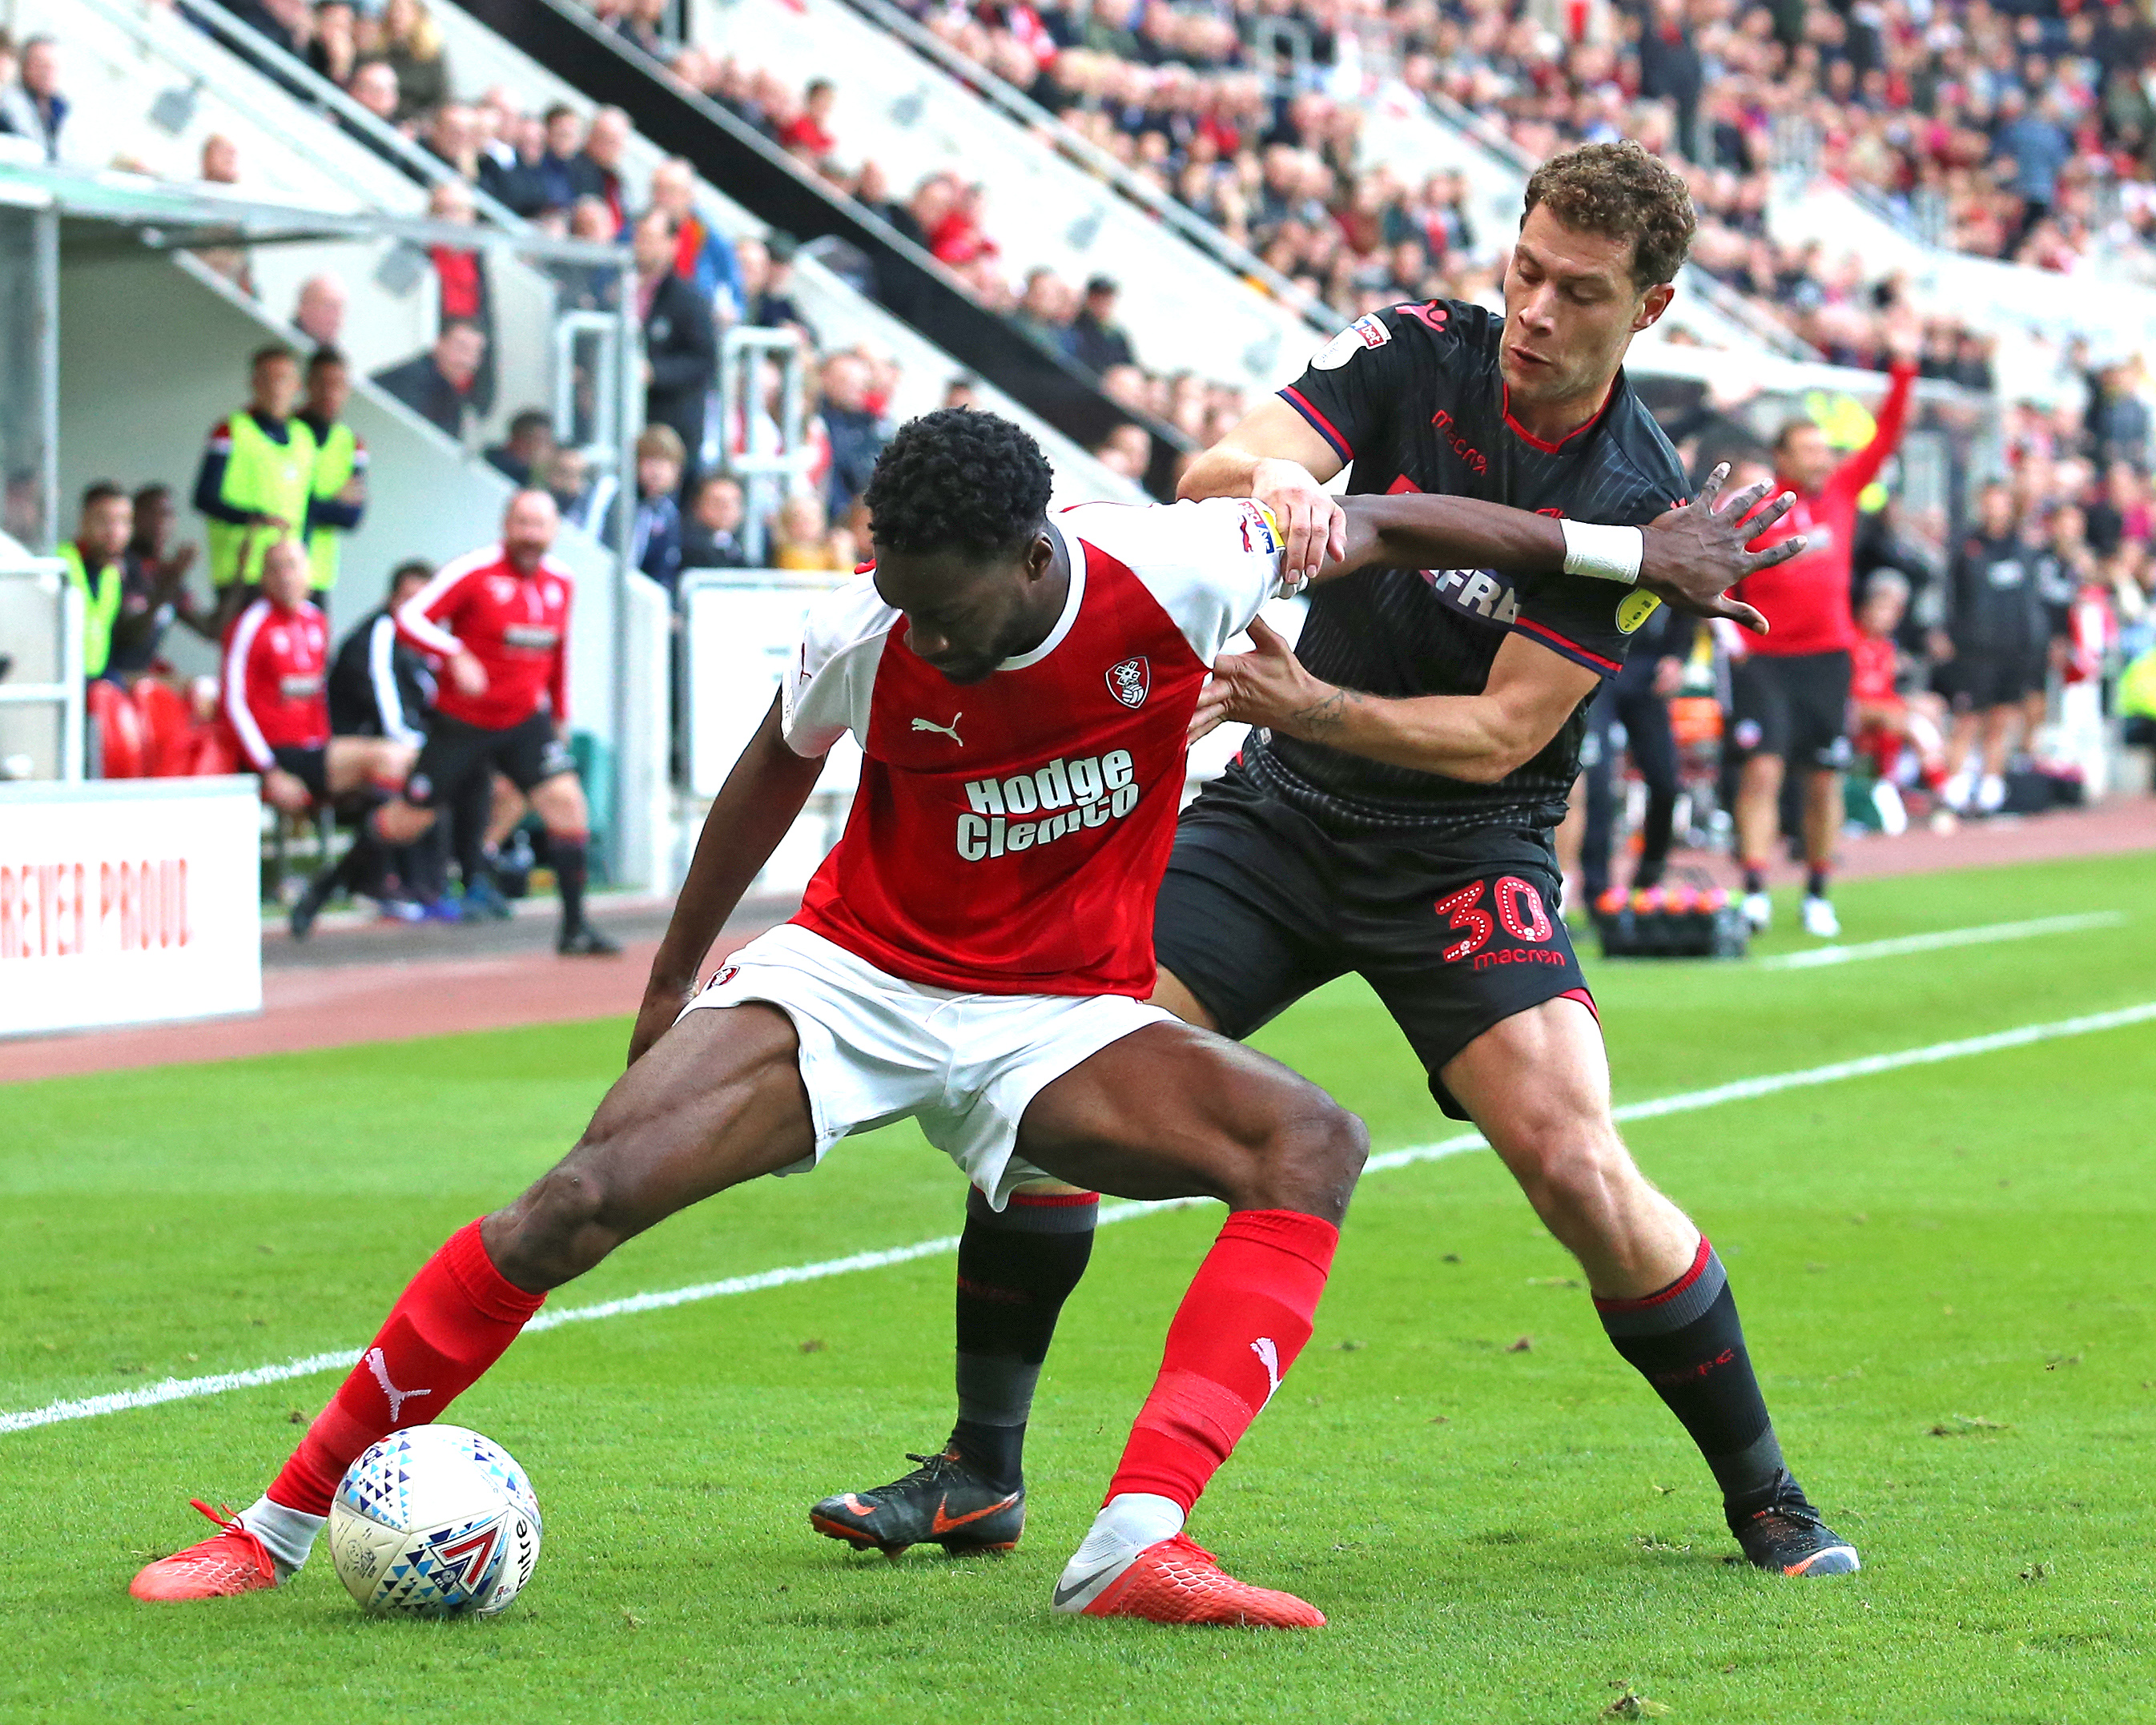 Rotherham United v Bolton Wanderers - Sky Bet Championship